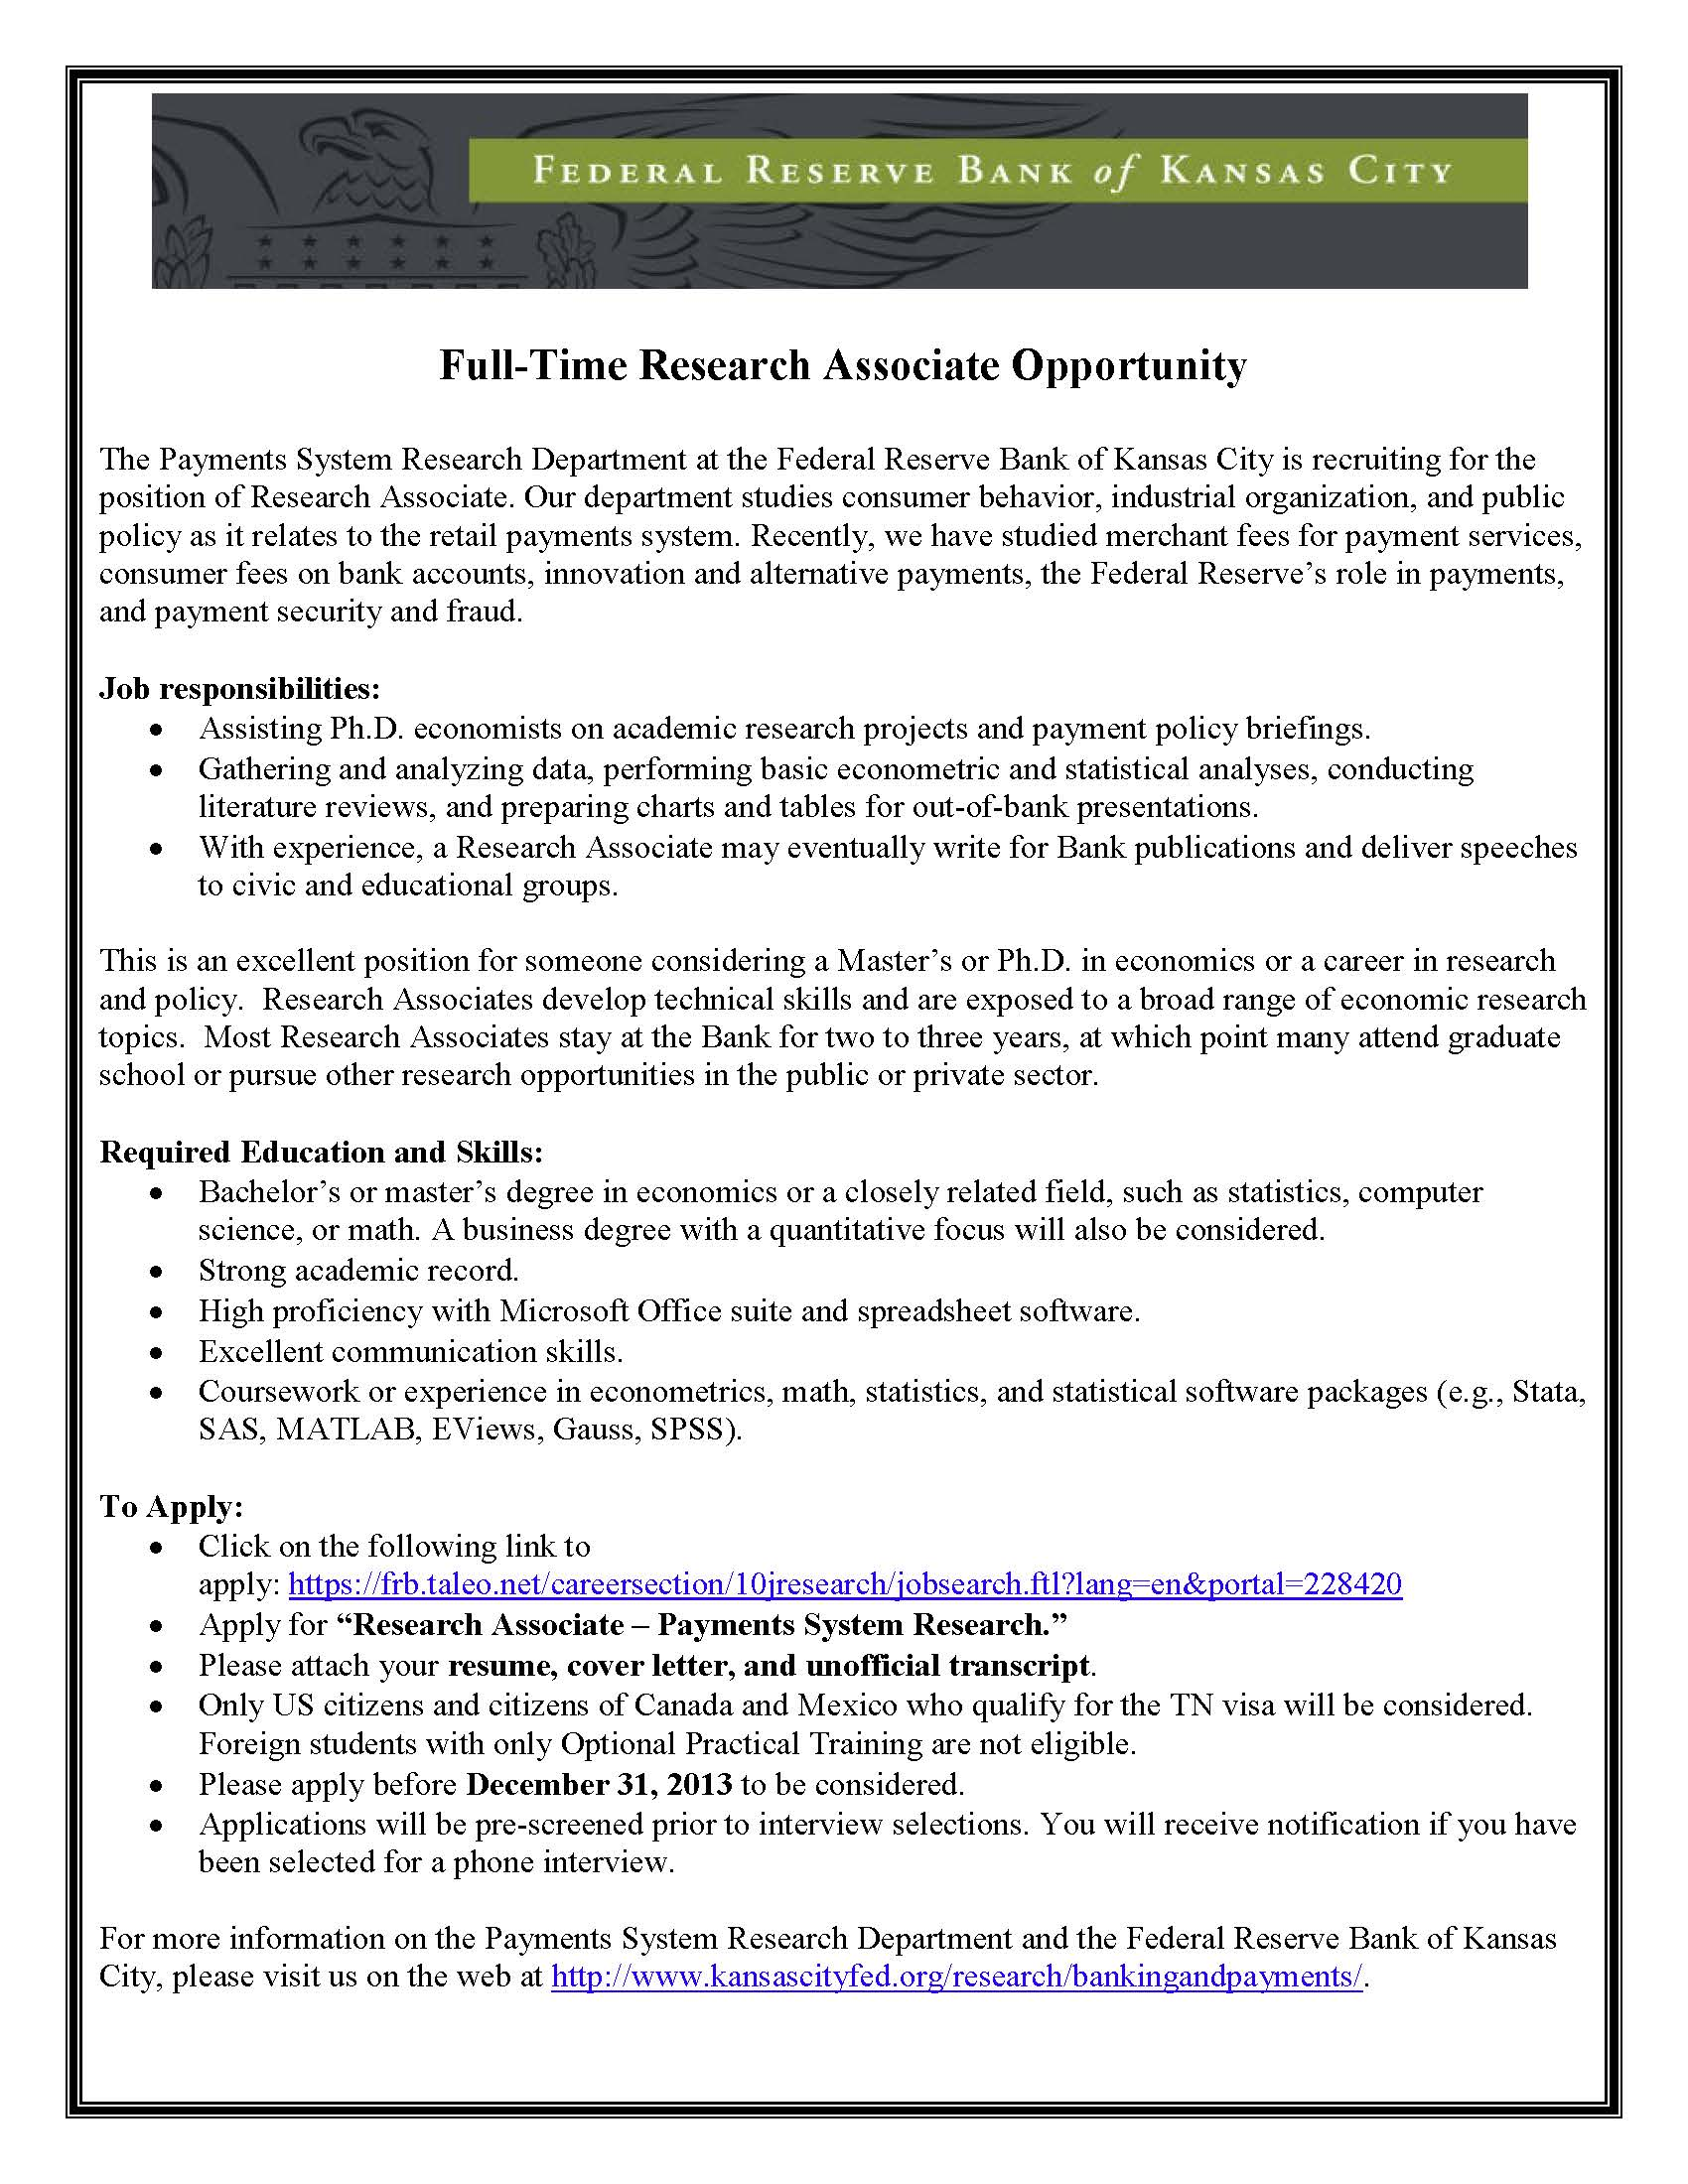 research associate opportunity federal reserve bank of kansas city